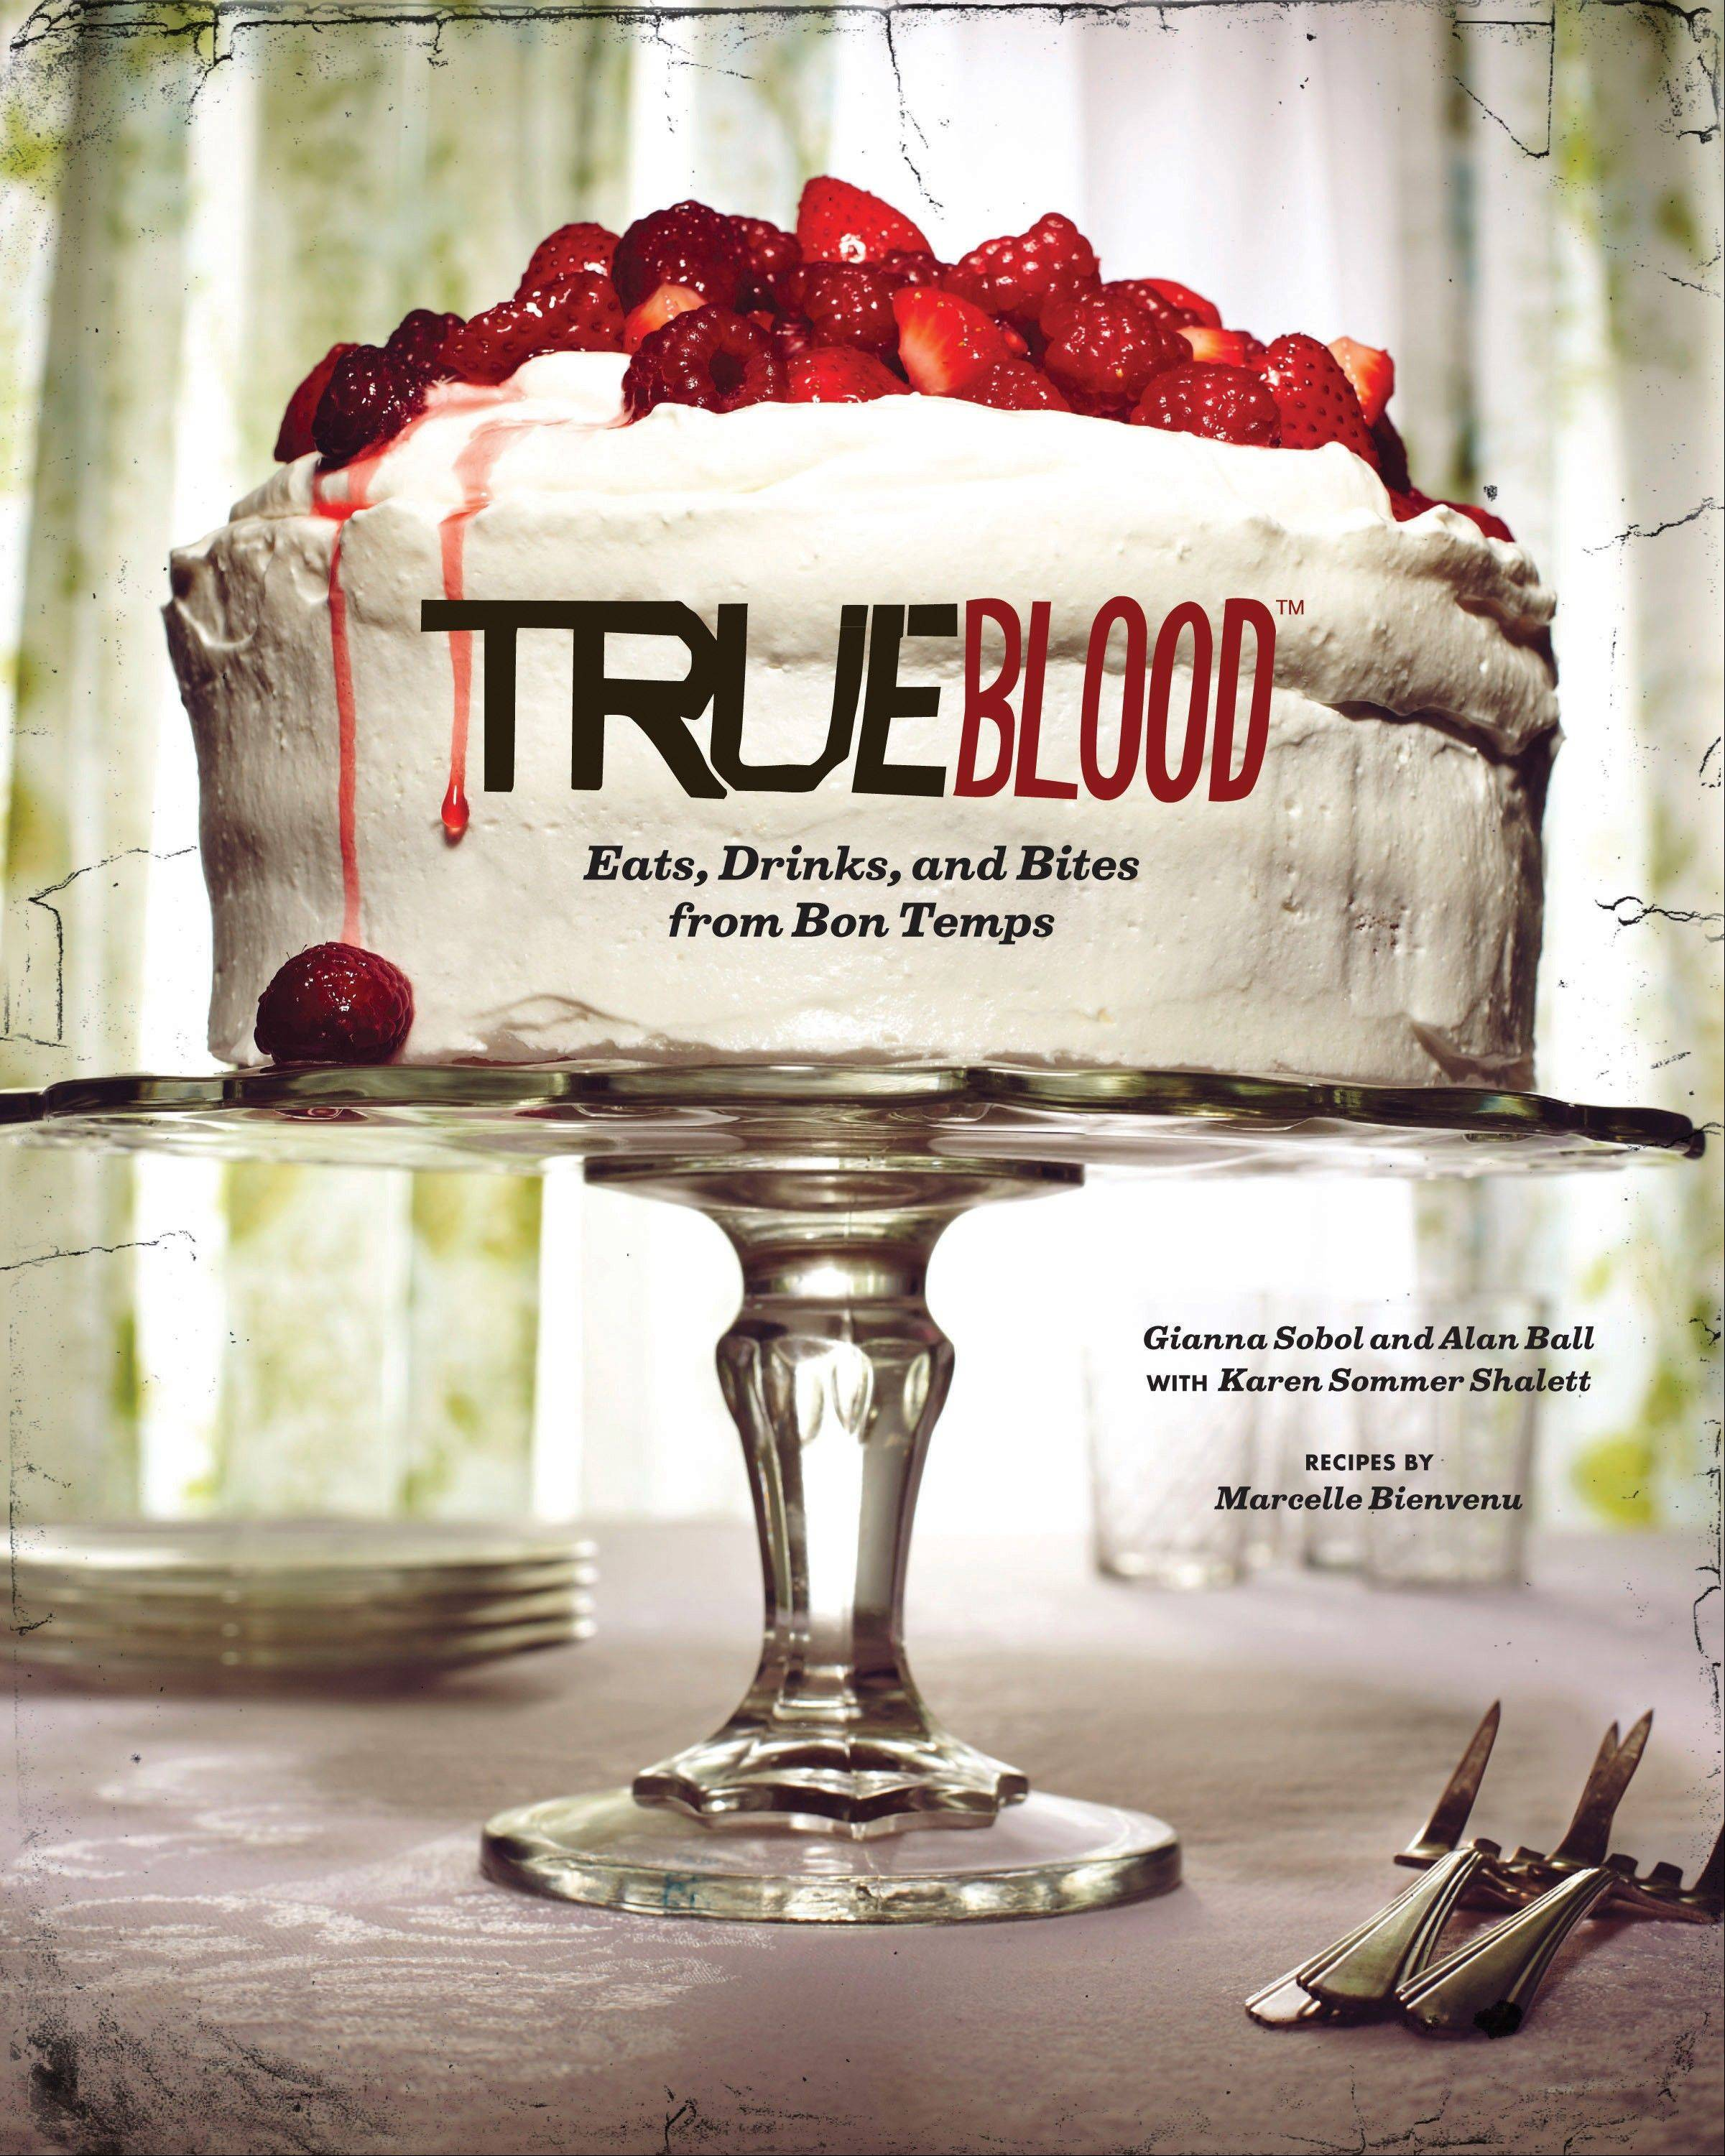 �True Blood: East, Drinks, and Bites from Bon Temps� by Marcelle Bienvenu